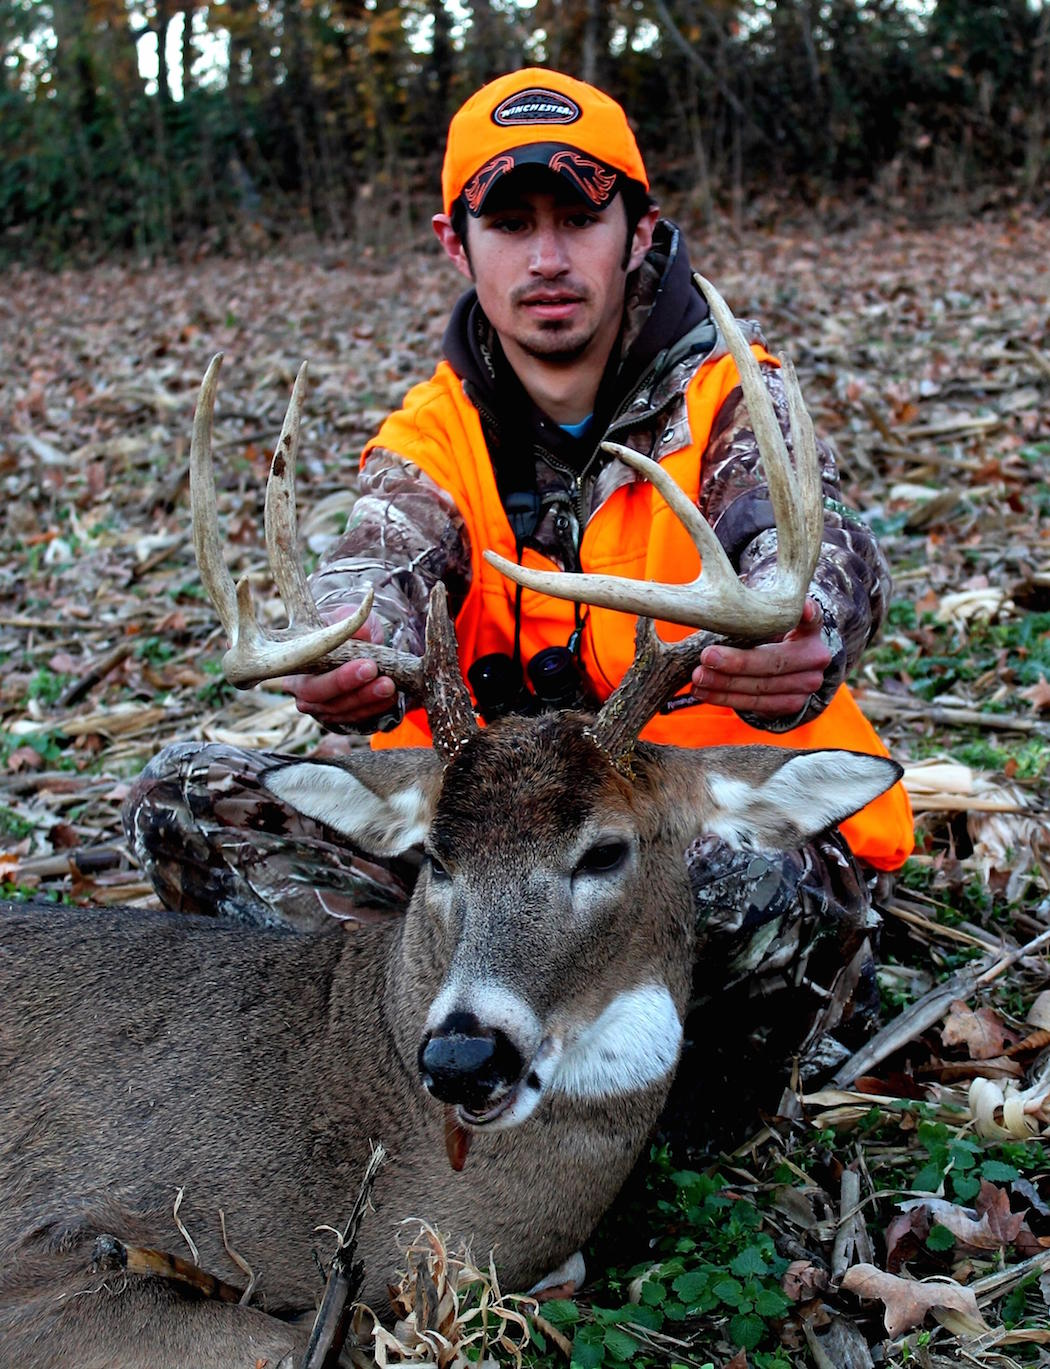 Myth: Culling Deer Will Significantly Improve Overall Antler Production.